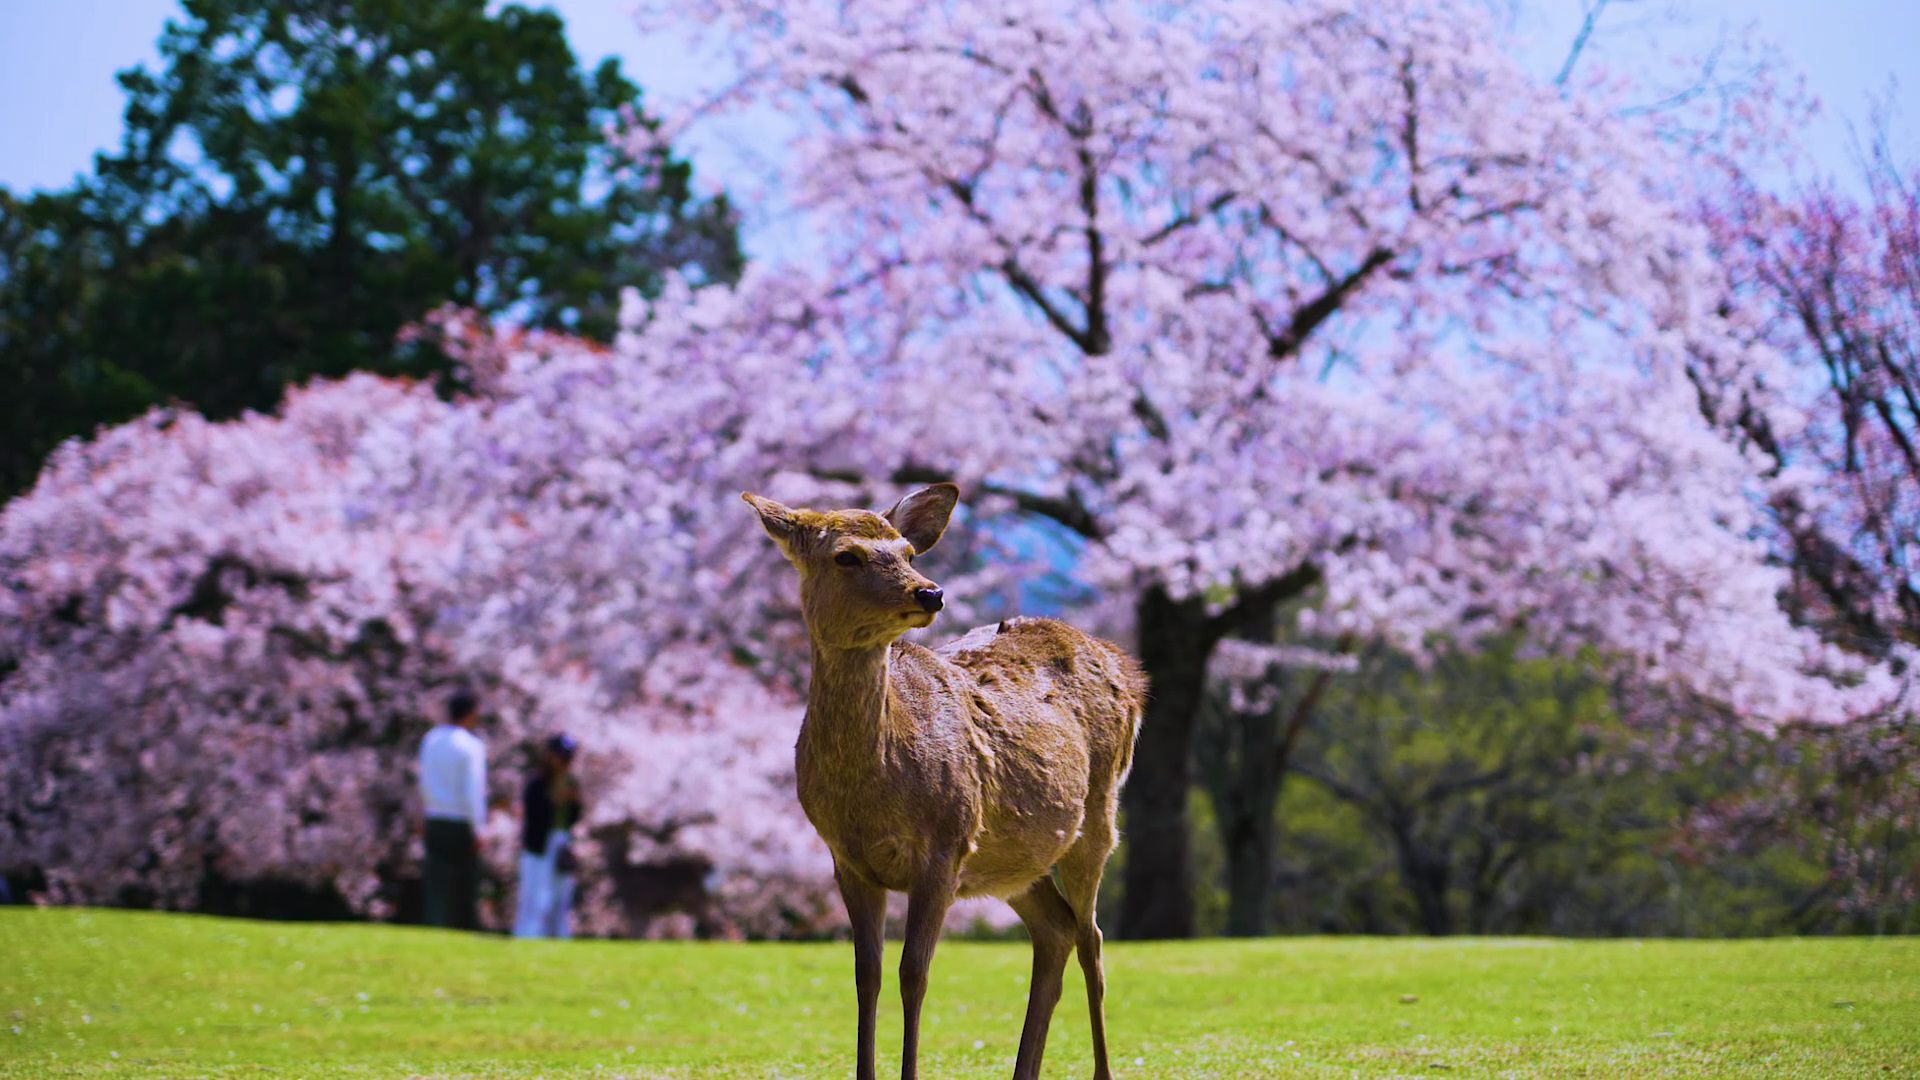 Cherry trees in full bloom form a backdrop to deer in Nara Park.